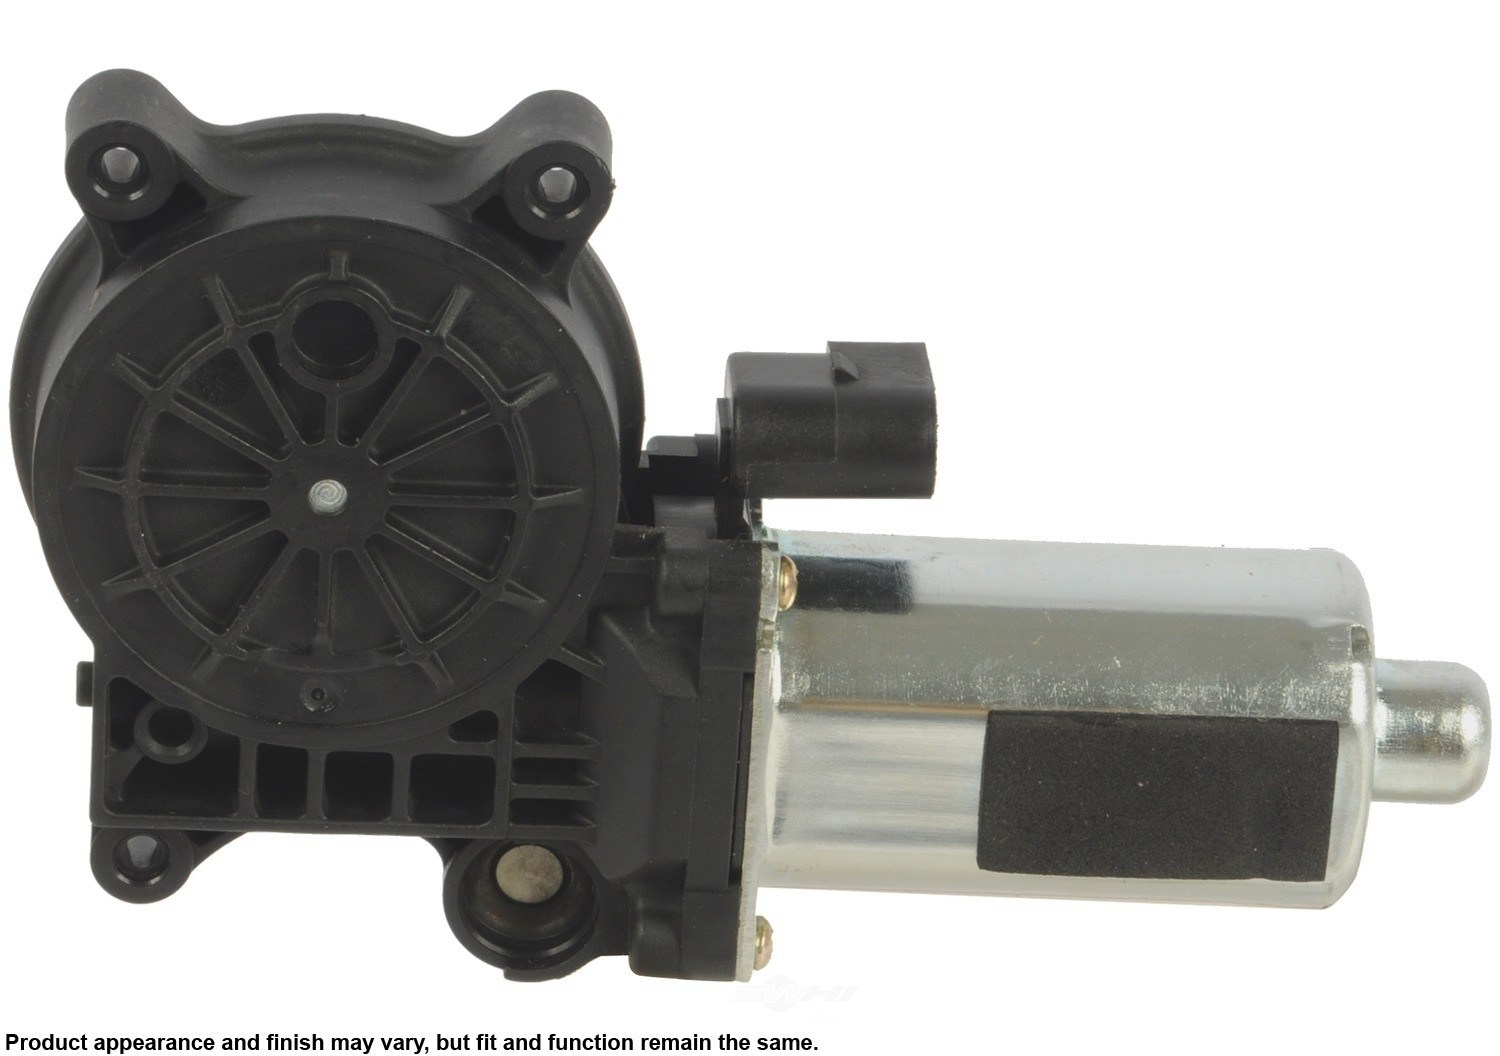 CARDONE NEW - Window Lift Motor (Front Left) - A1S 82-3005